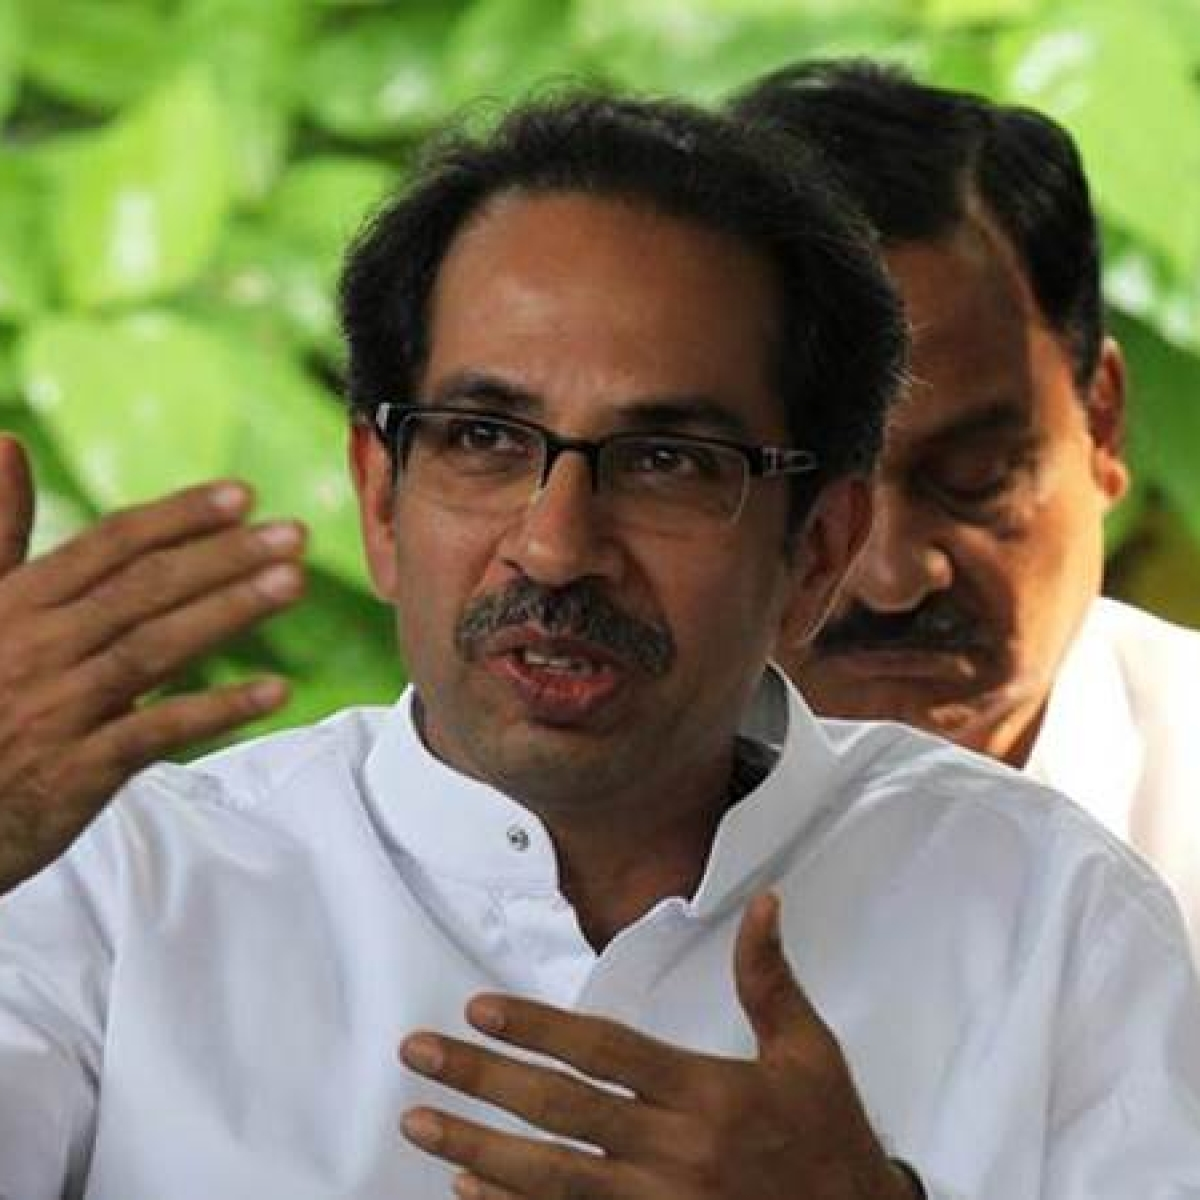 From Matoshree to plush hotels, time has changed for the Sena